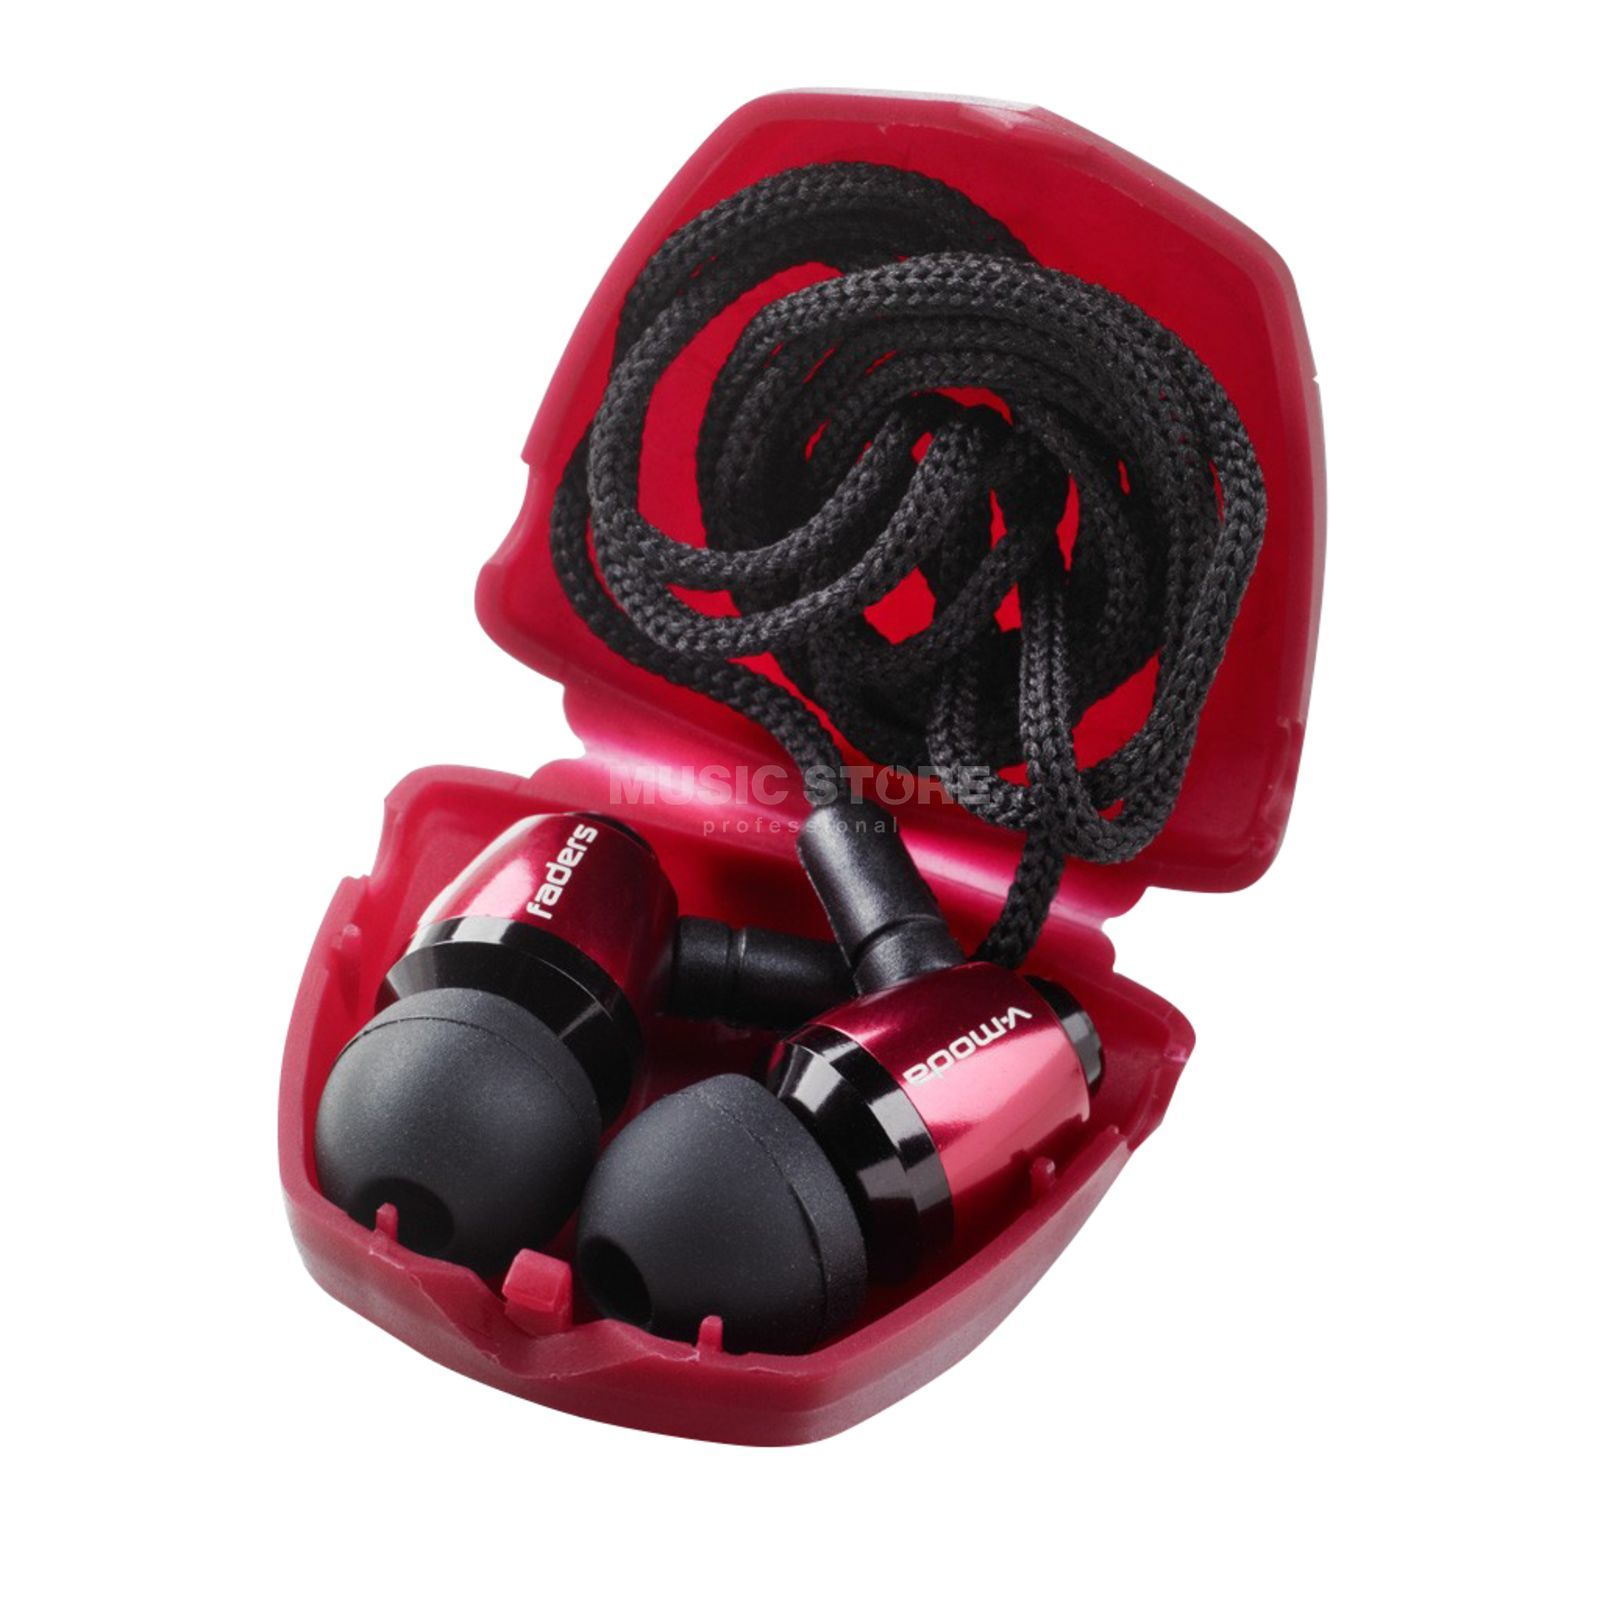 V-Moda Faders VIP by Ear Armor rouge Изображение товара